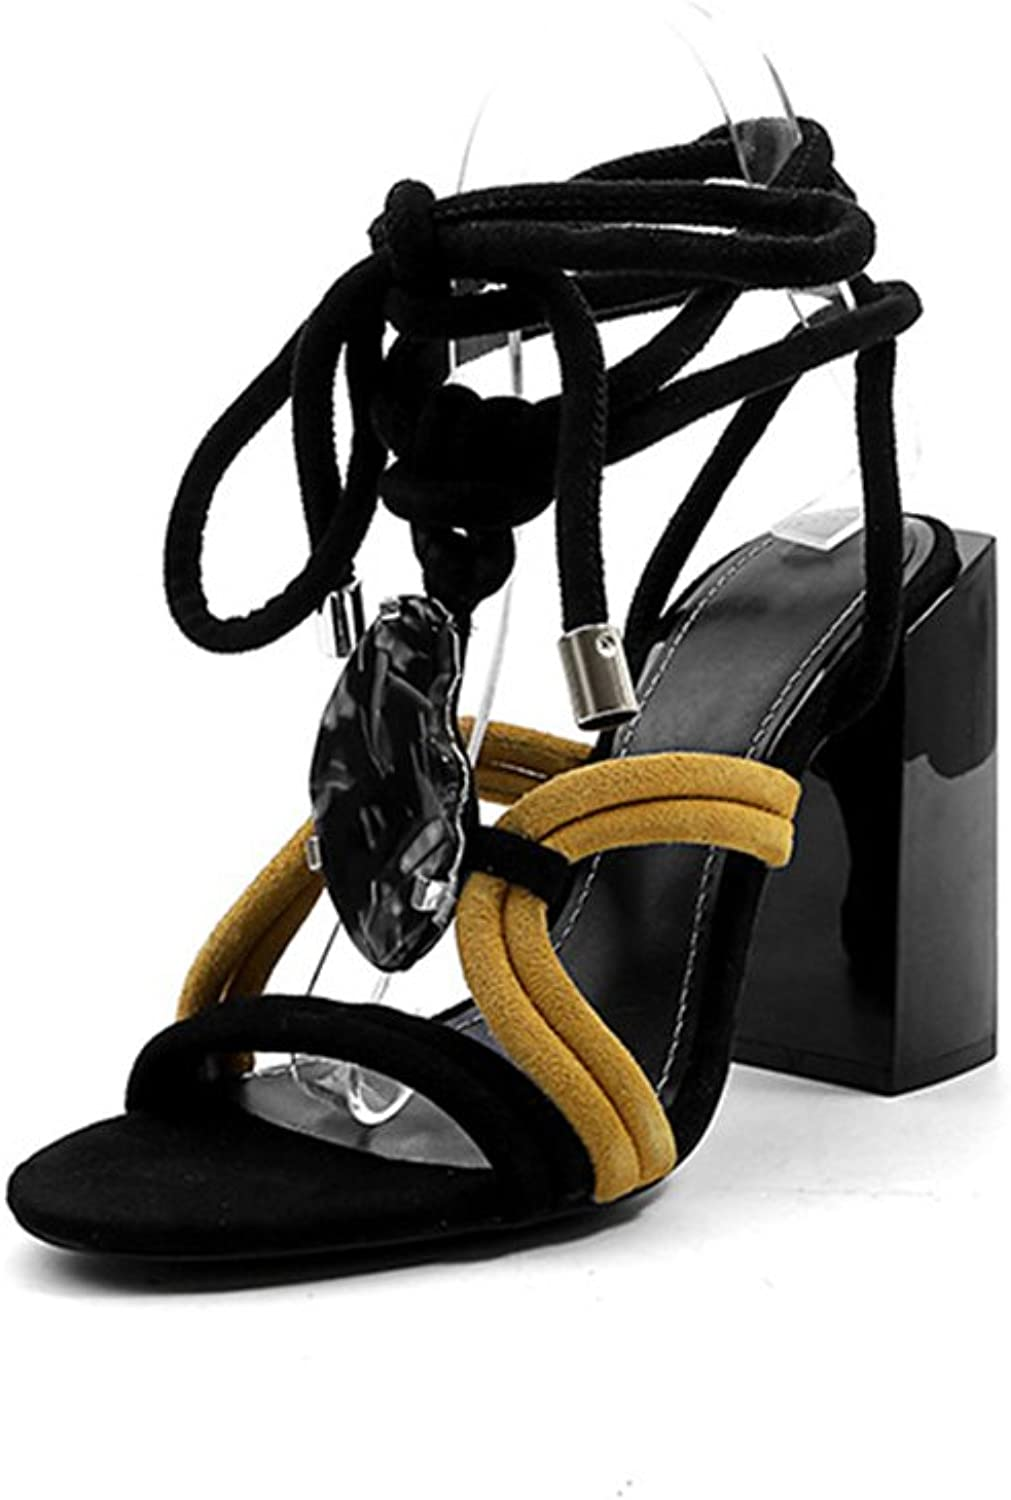 Womens's shoes Summer New Europe America Fashion Lace-up Sandals Rough Heel Leather Rome shoes for Casual Dress Party & Evening Sandals